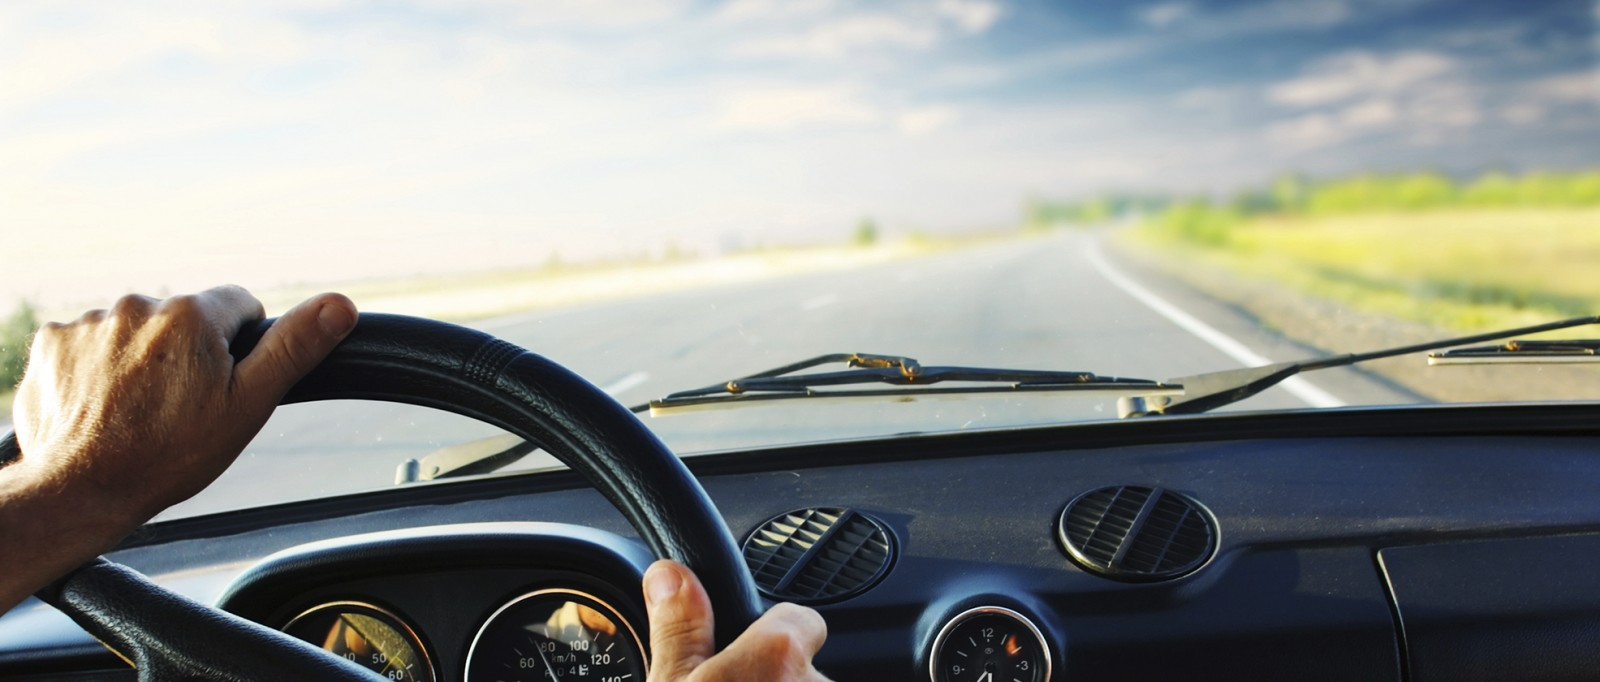 Cheap Auto Insurance: Some Useful Tips To Finding Quotes Fast